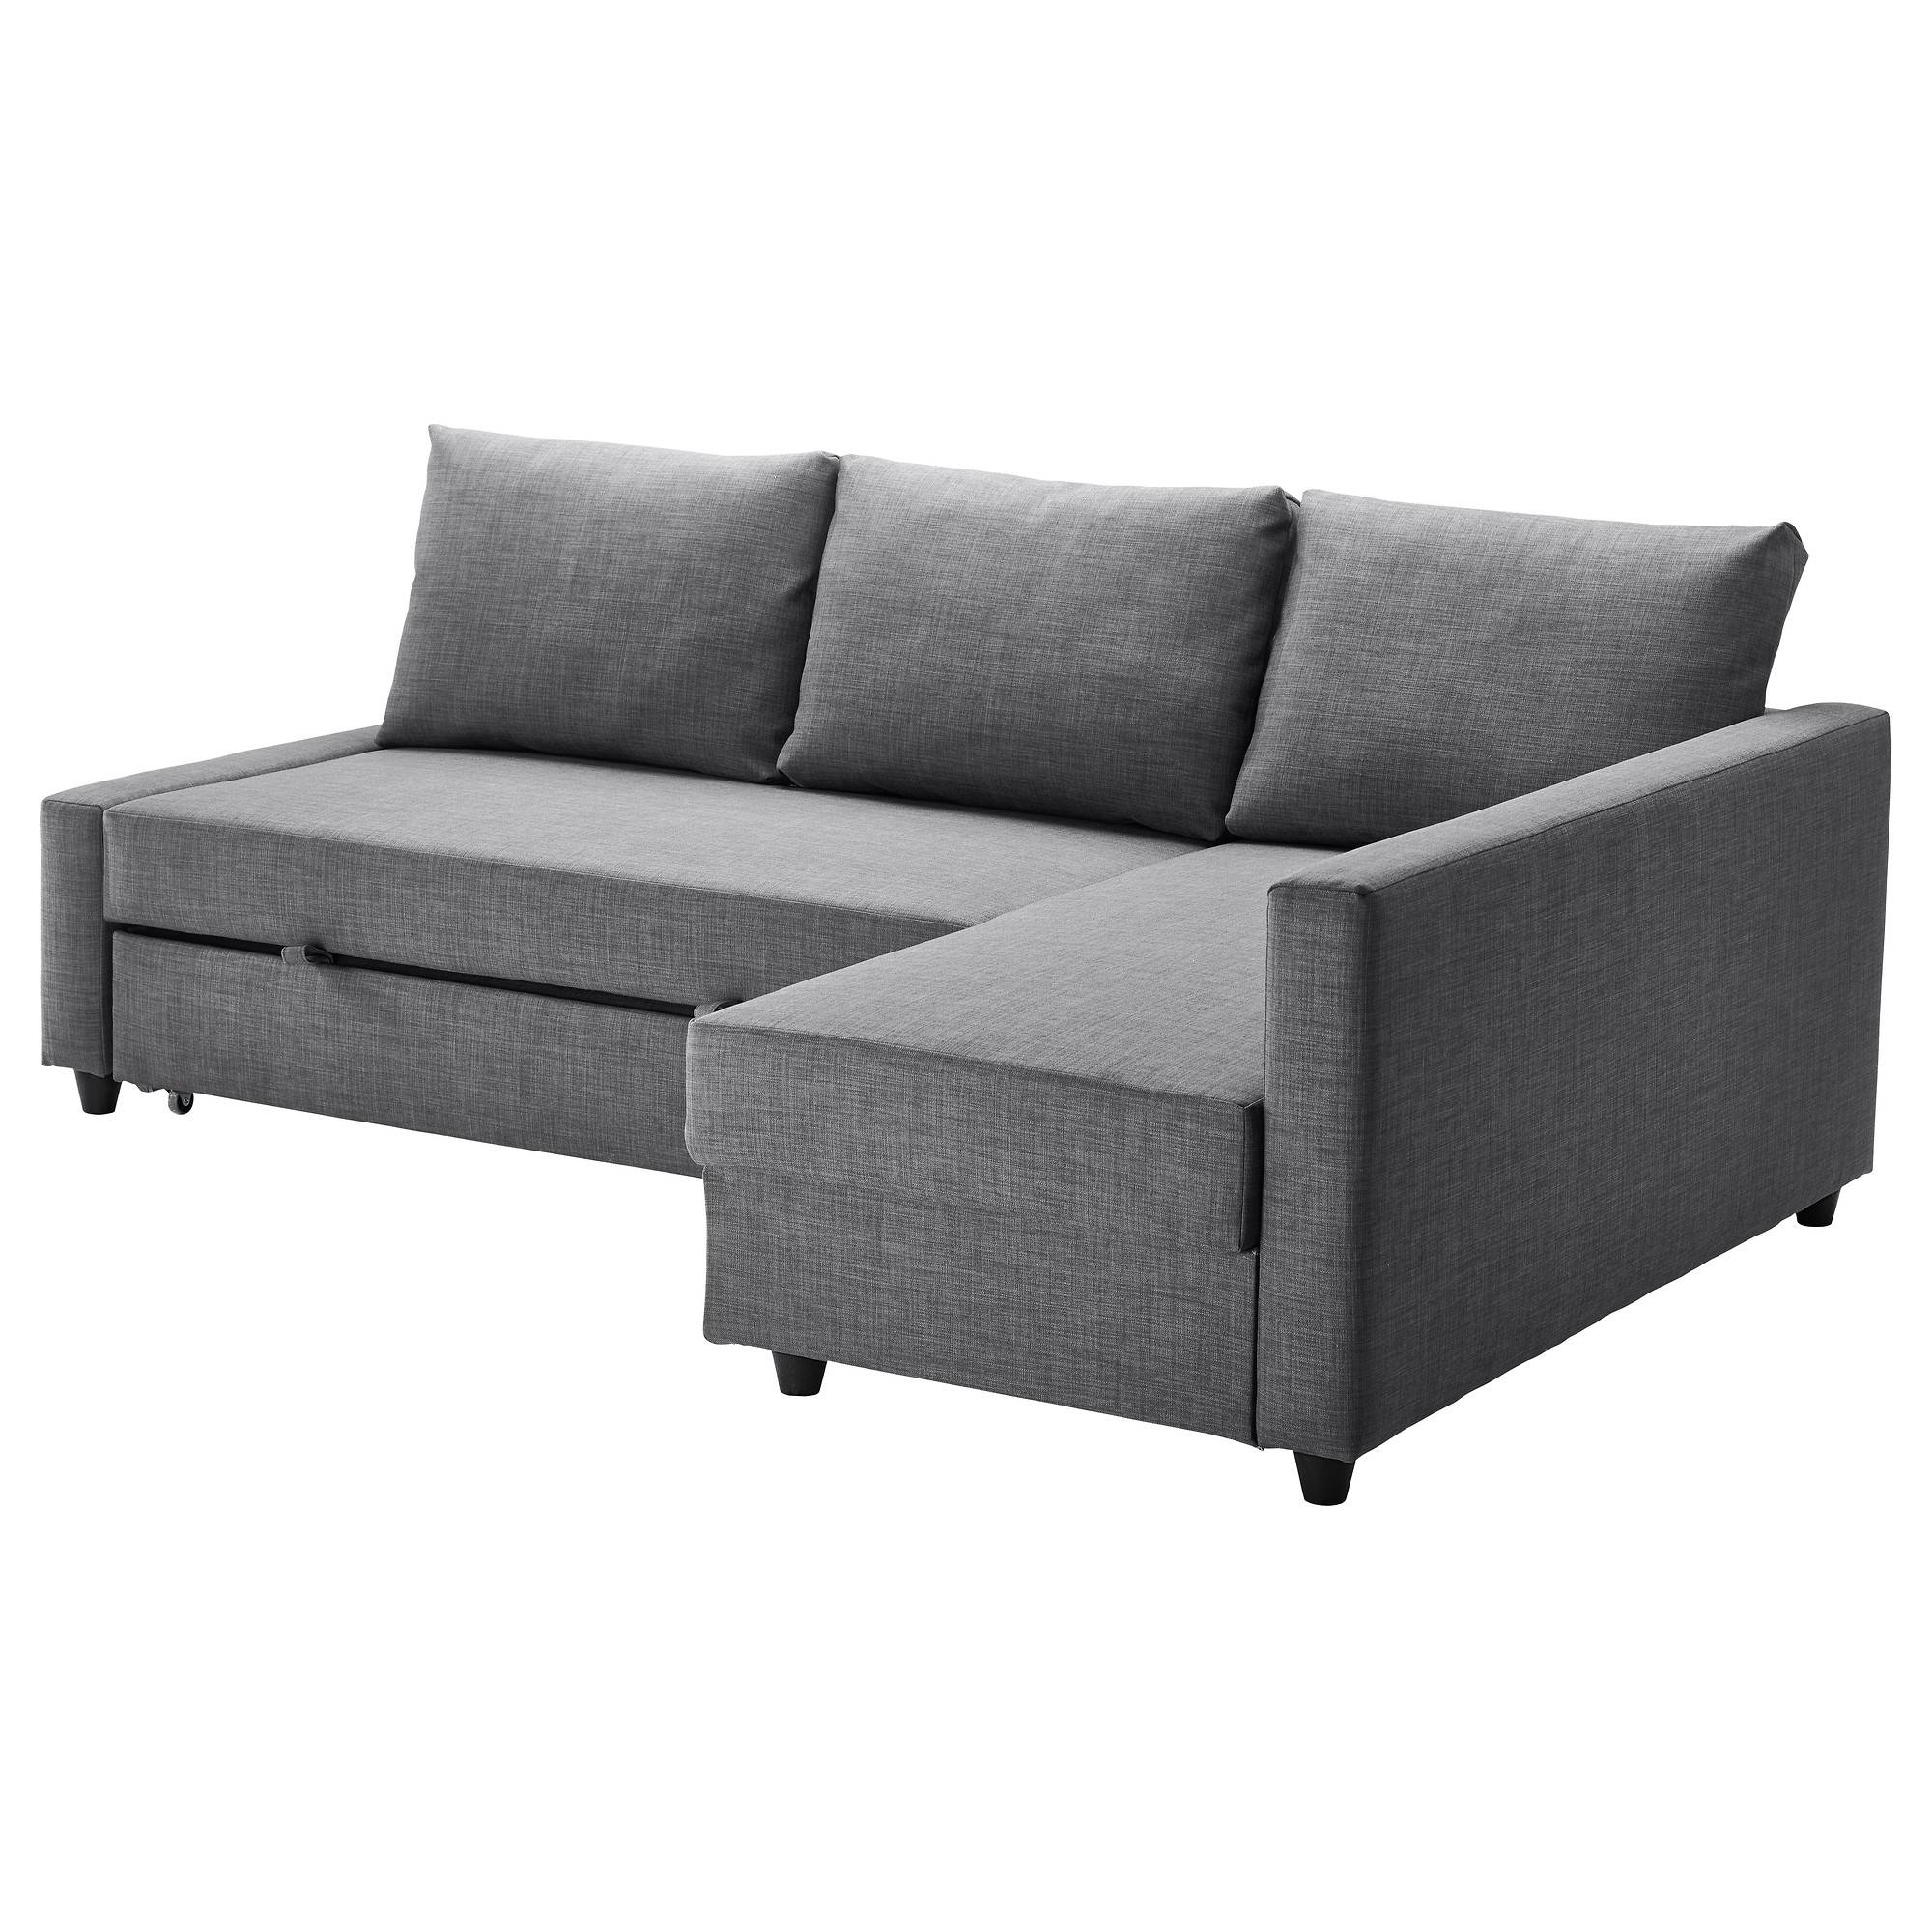 Sofa Beds & Futons - Ikea with regard to Sleeper Sectional Sofa Ikea (Image 21 of 25)